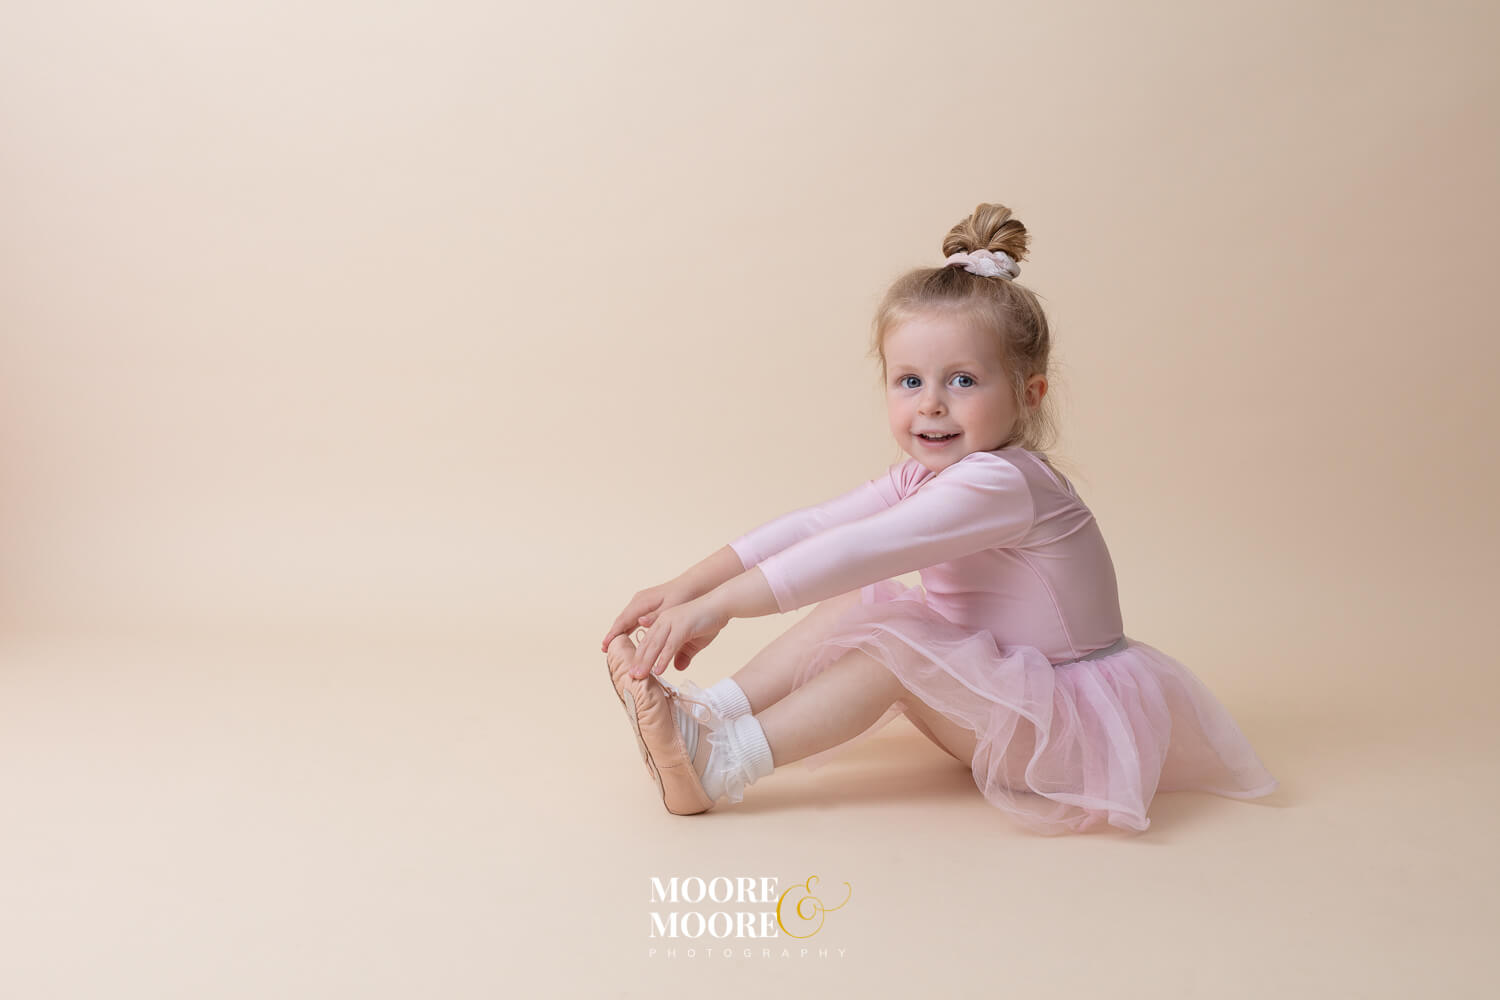 Baby ballet Dance Photography at Moore & Moore Photography